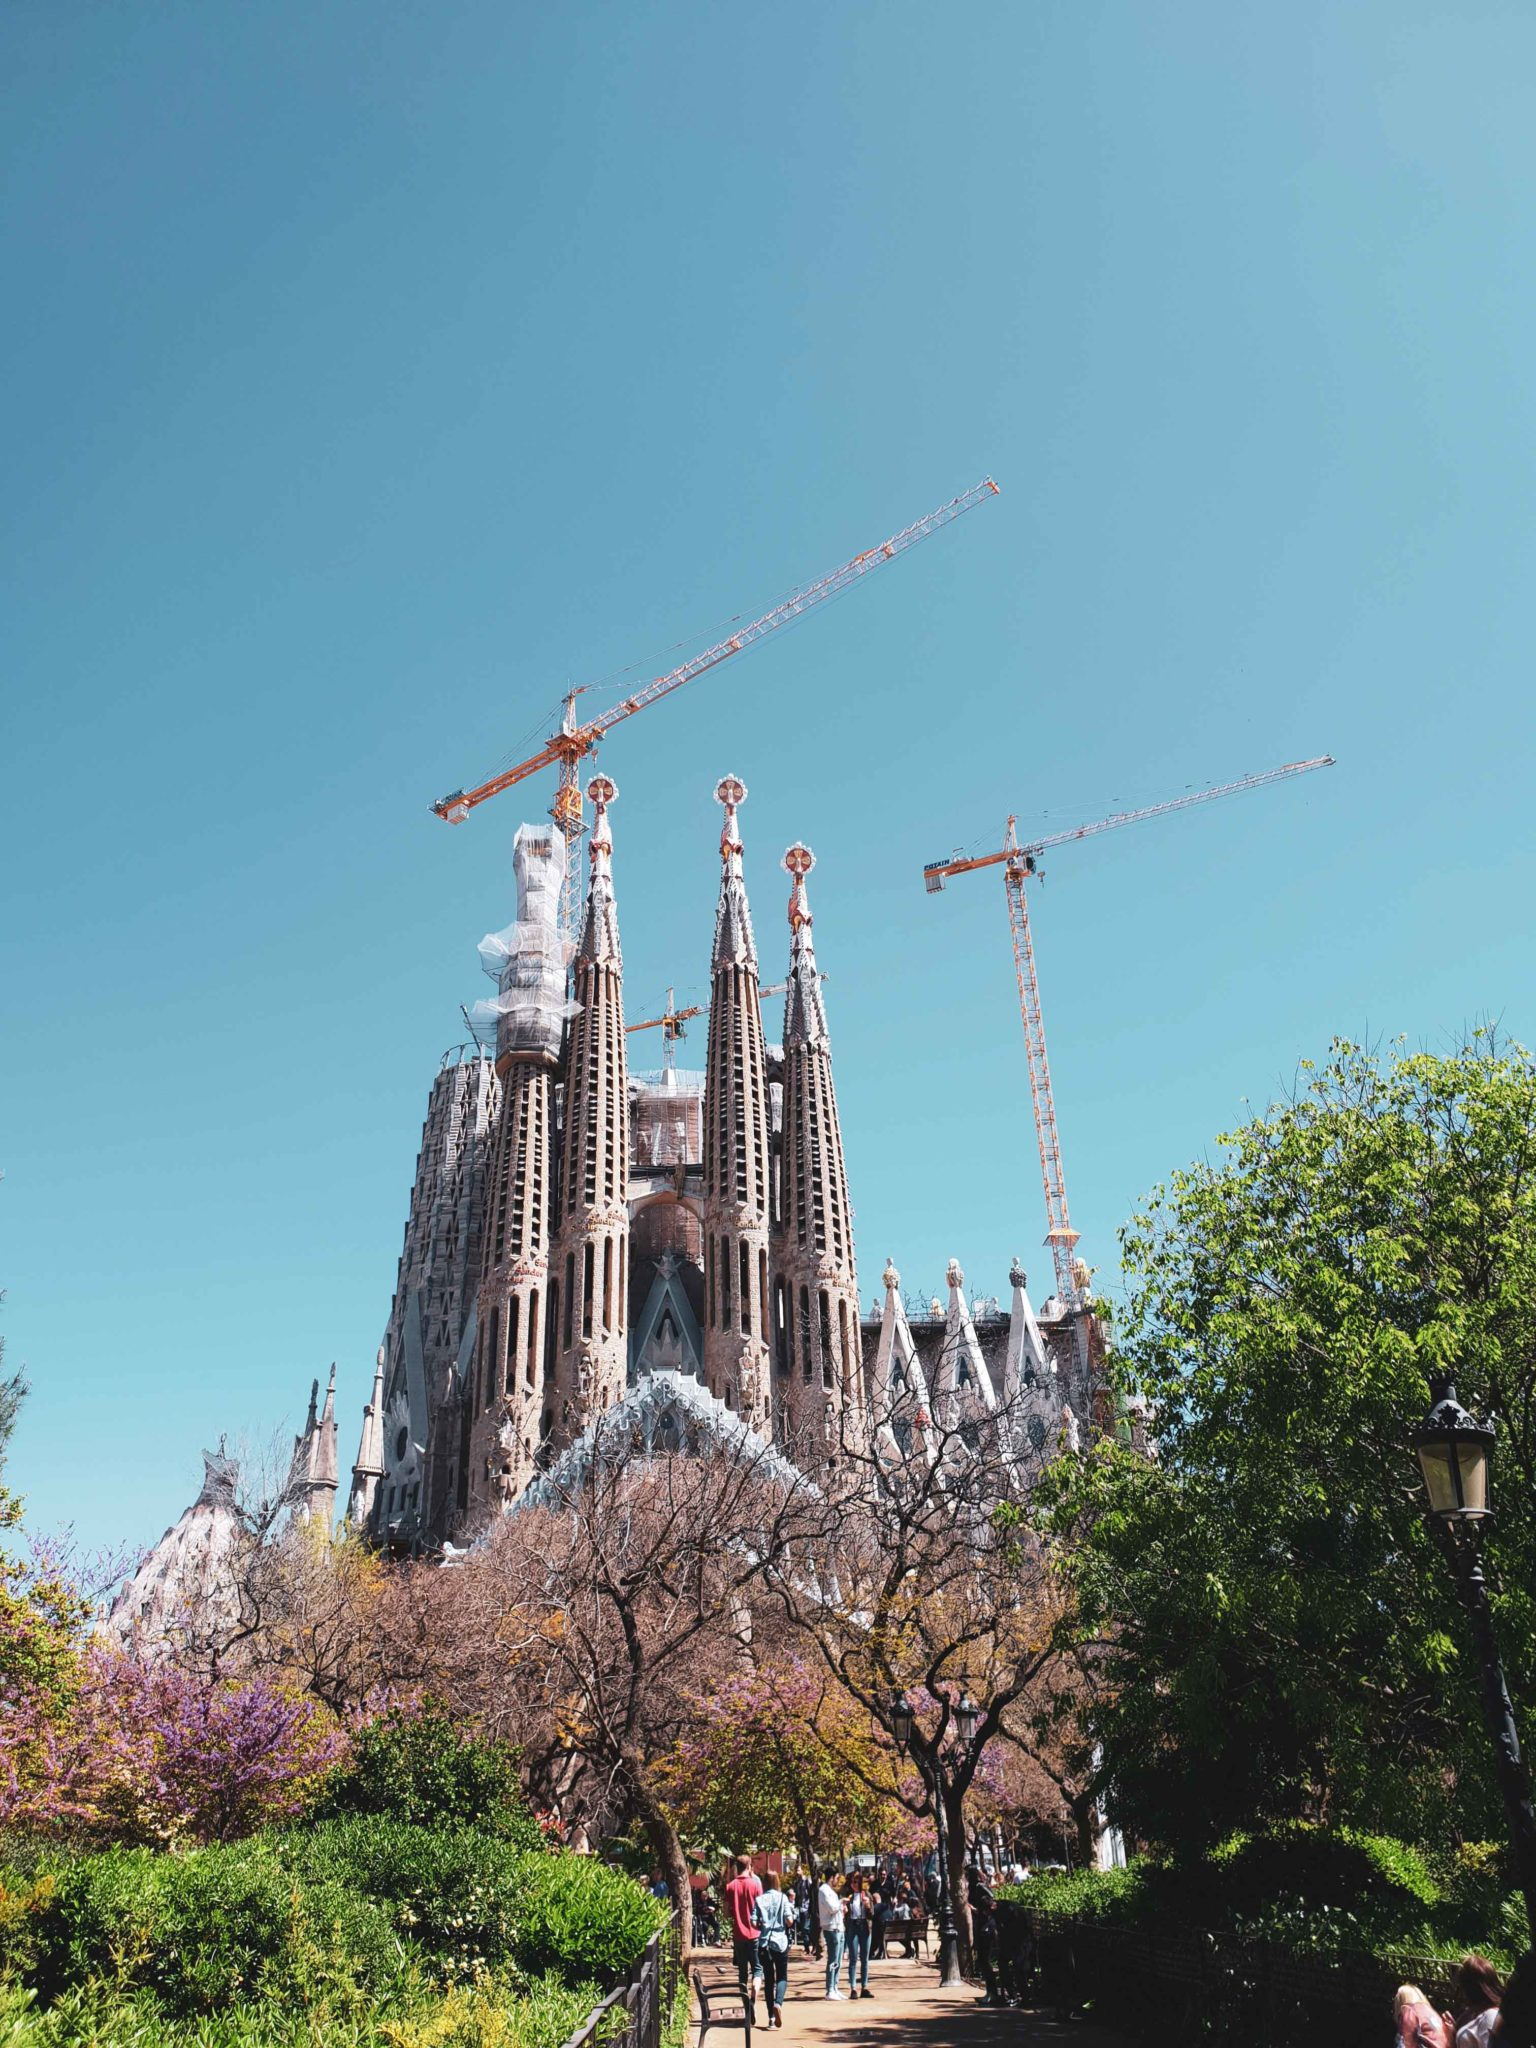 Barcelona travel guide by Michaella and Lina from Bulgarian lifestyle blog Quite a Looker / La Sagrada Familia